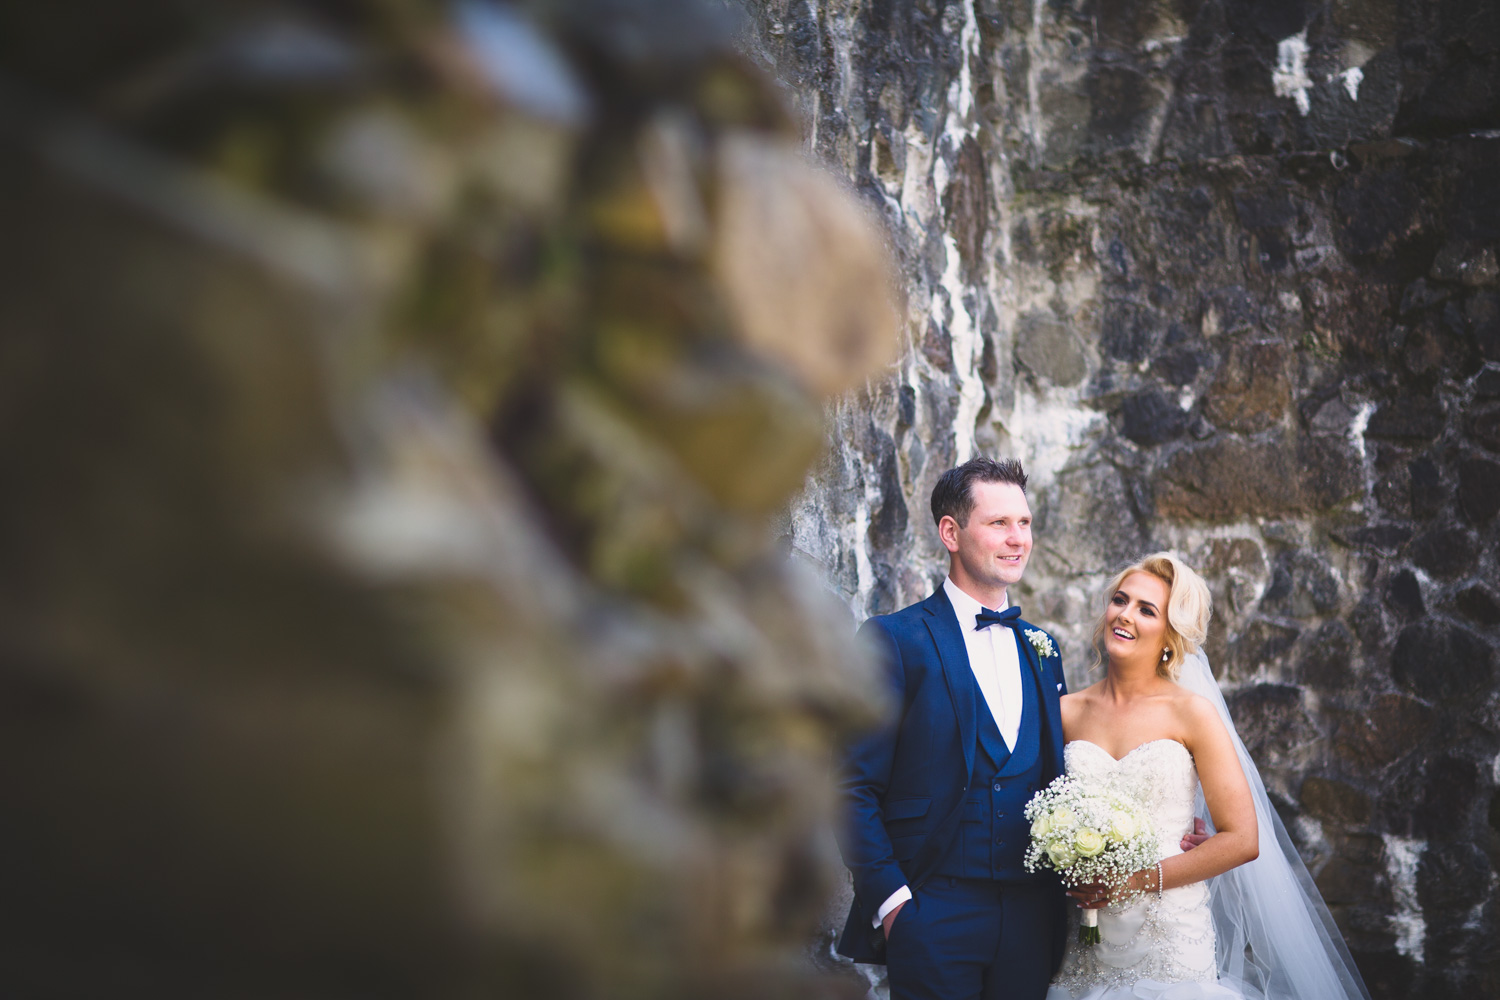 Mark_Barnes_wedding_photographer_Northern_Ireland_Wedding_photography_Carlingford_Four_Seasons_Wedding-38.jpg